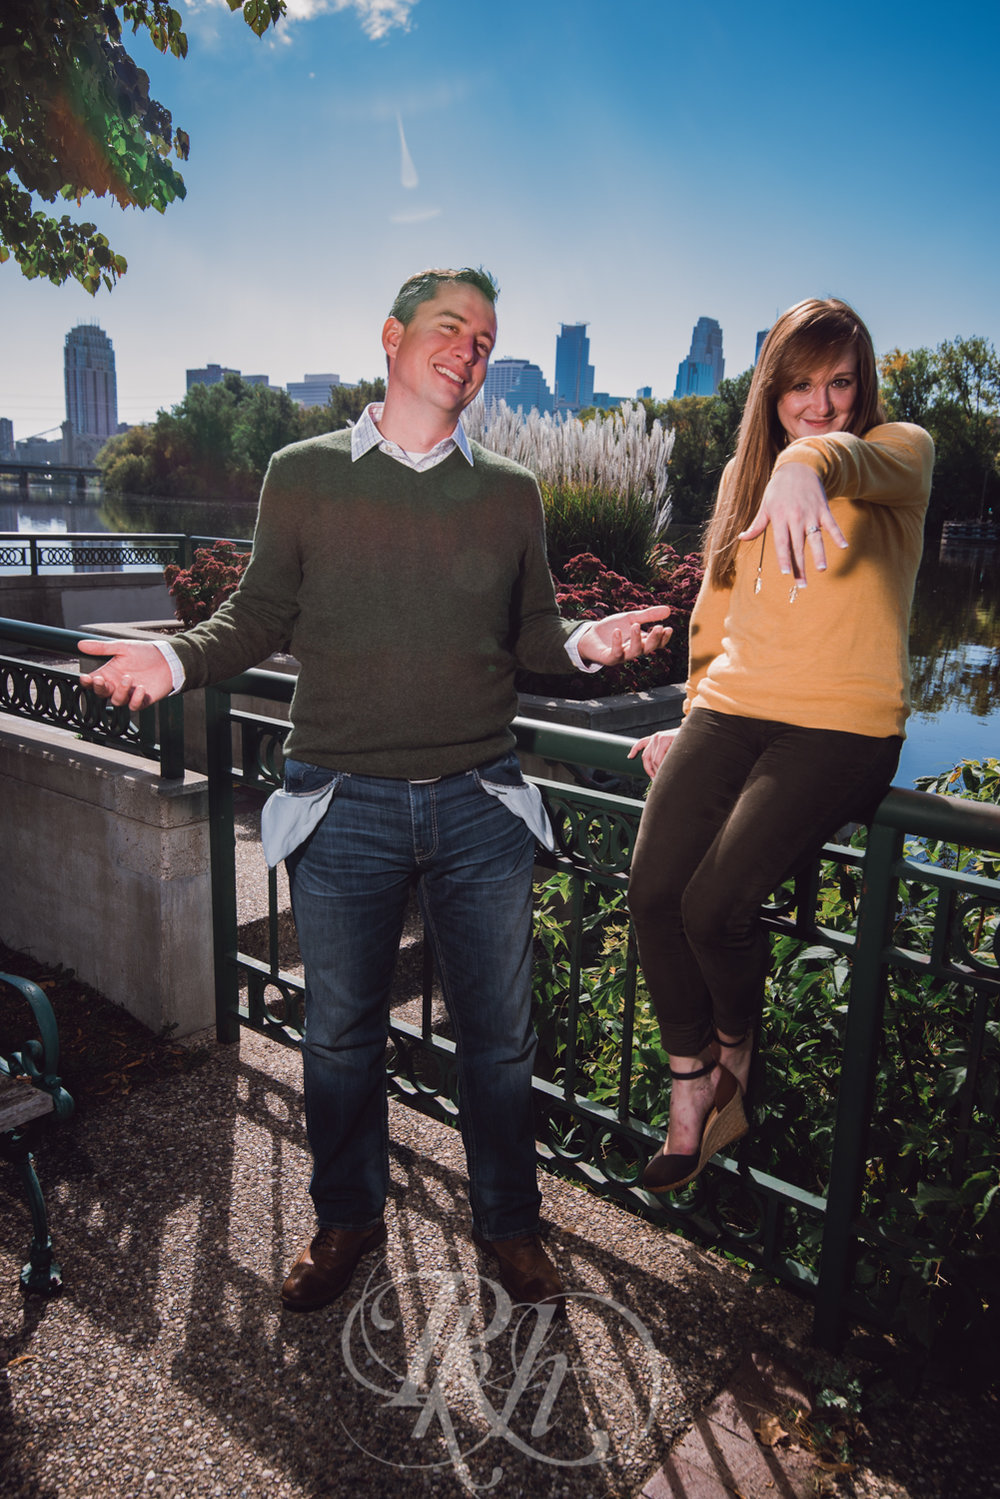 Bobbi & Graham - Minnesota Engagement Photography - RKH Images -6.jpg